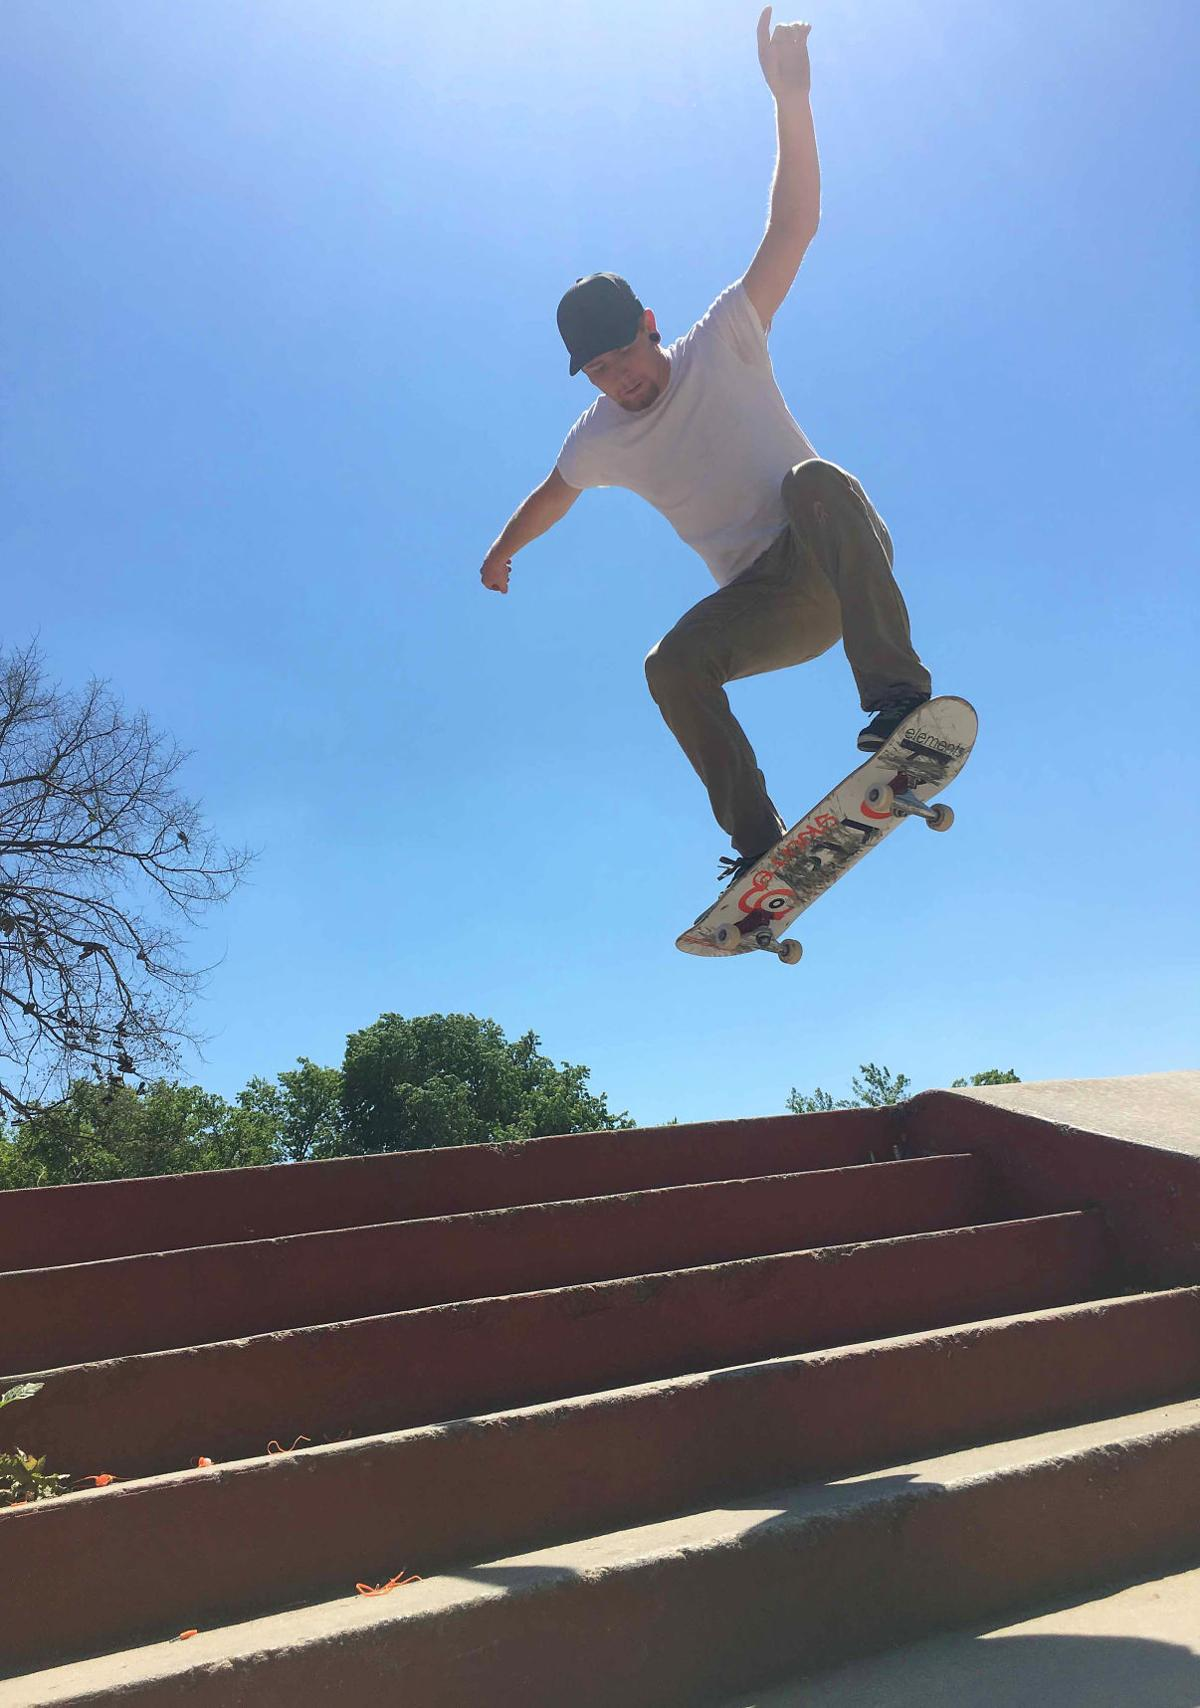 Skateboarding's popularity rolls on in south-central region